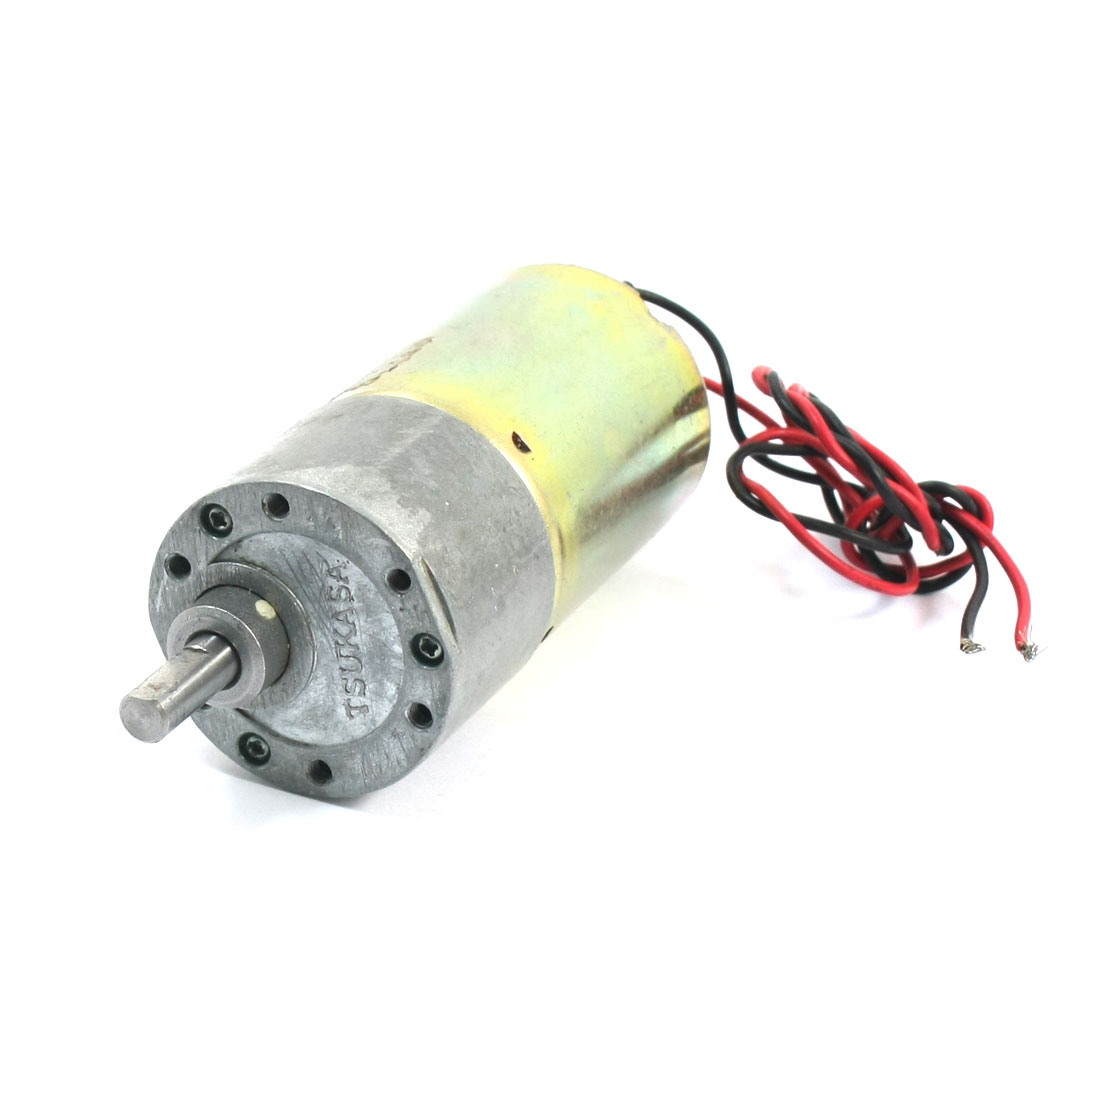 DIY Assembly 12V 140RPM High Torque Speed Reduce DC Geared Box Motor